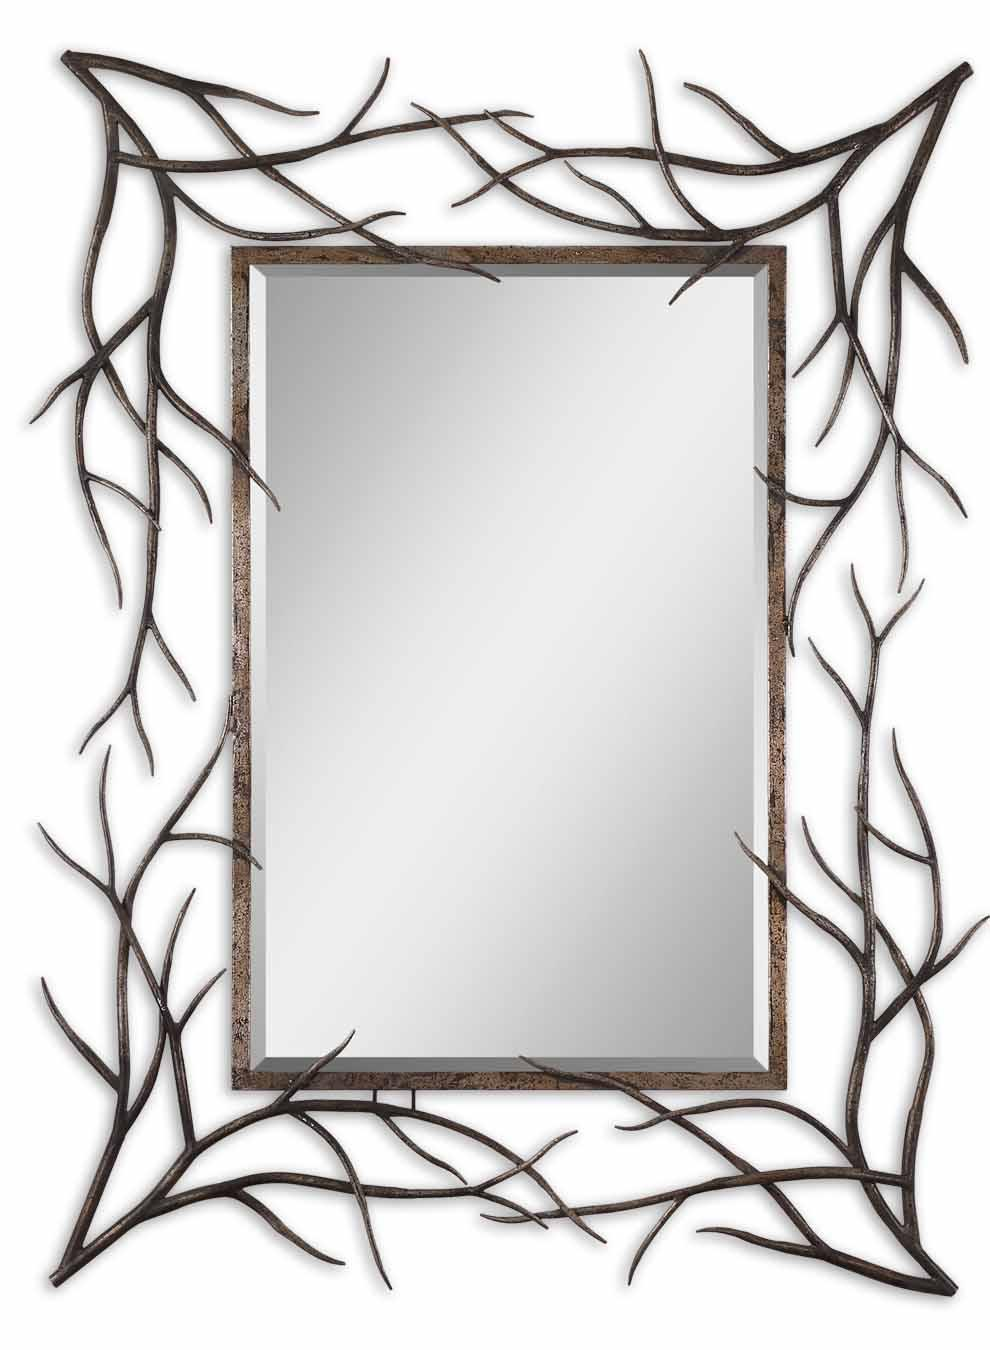 Foundation dezin decor mirror your walls - Mirrors decoration on the wall ...